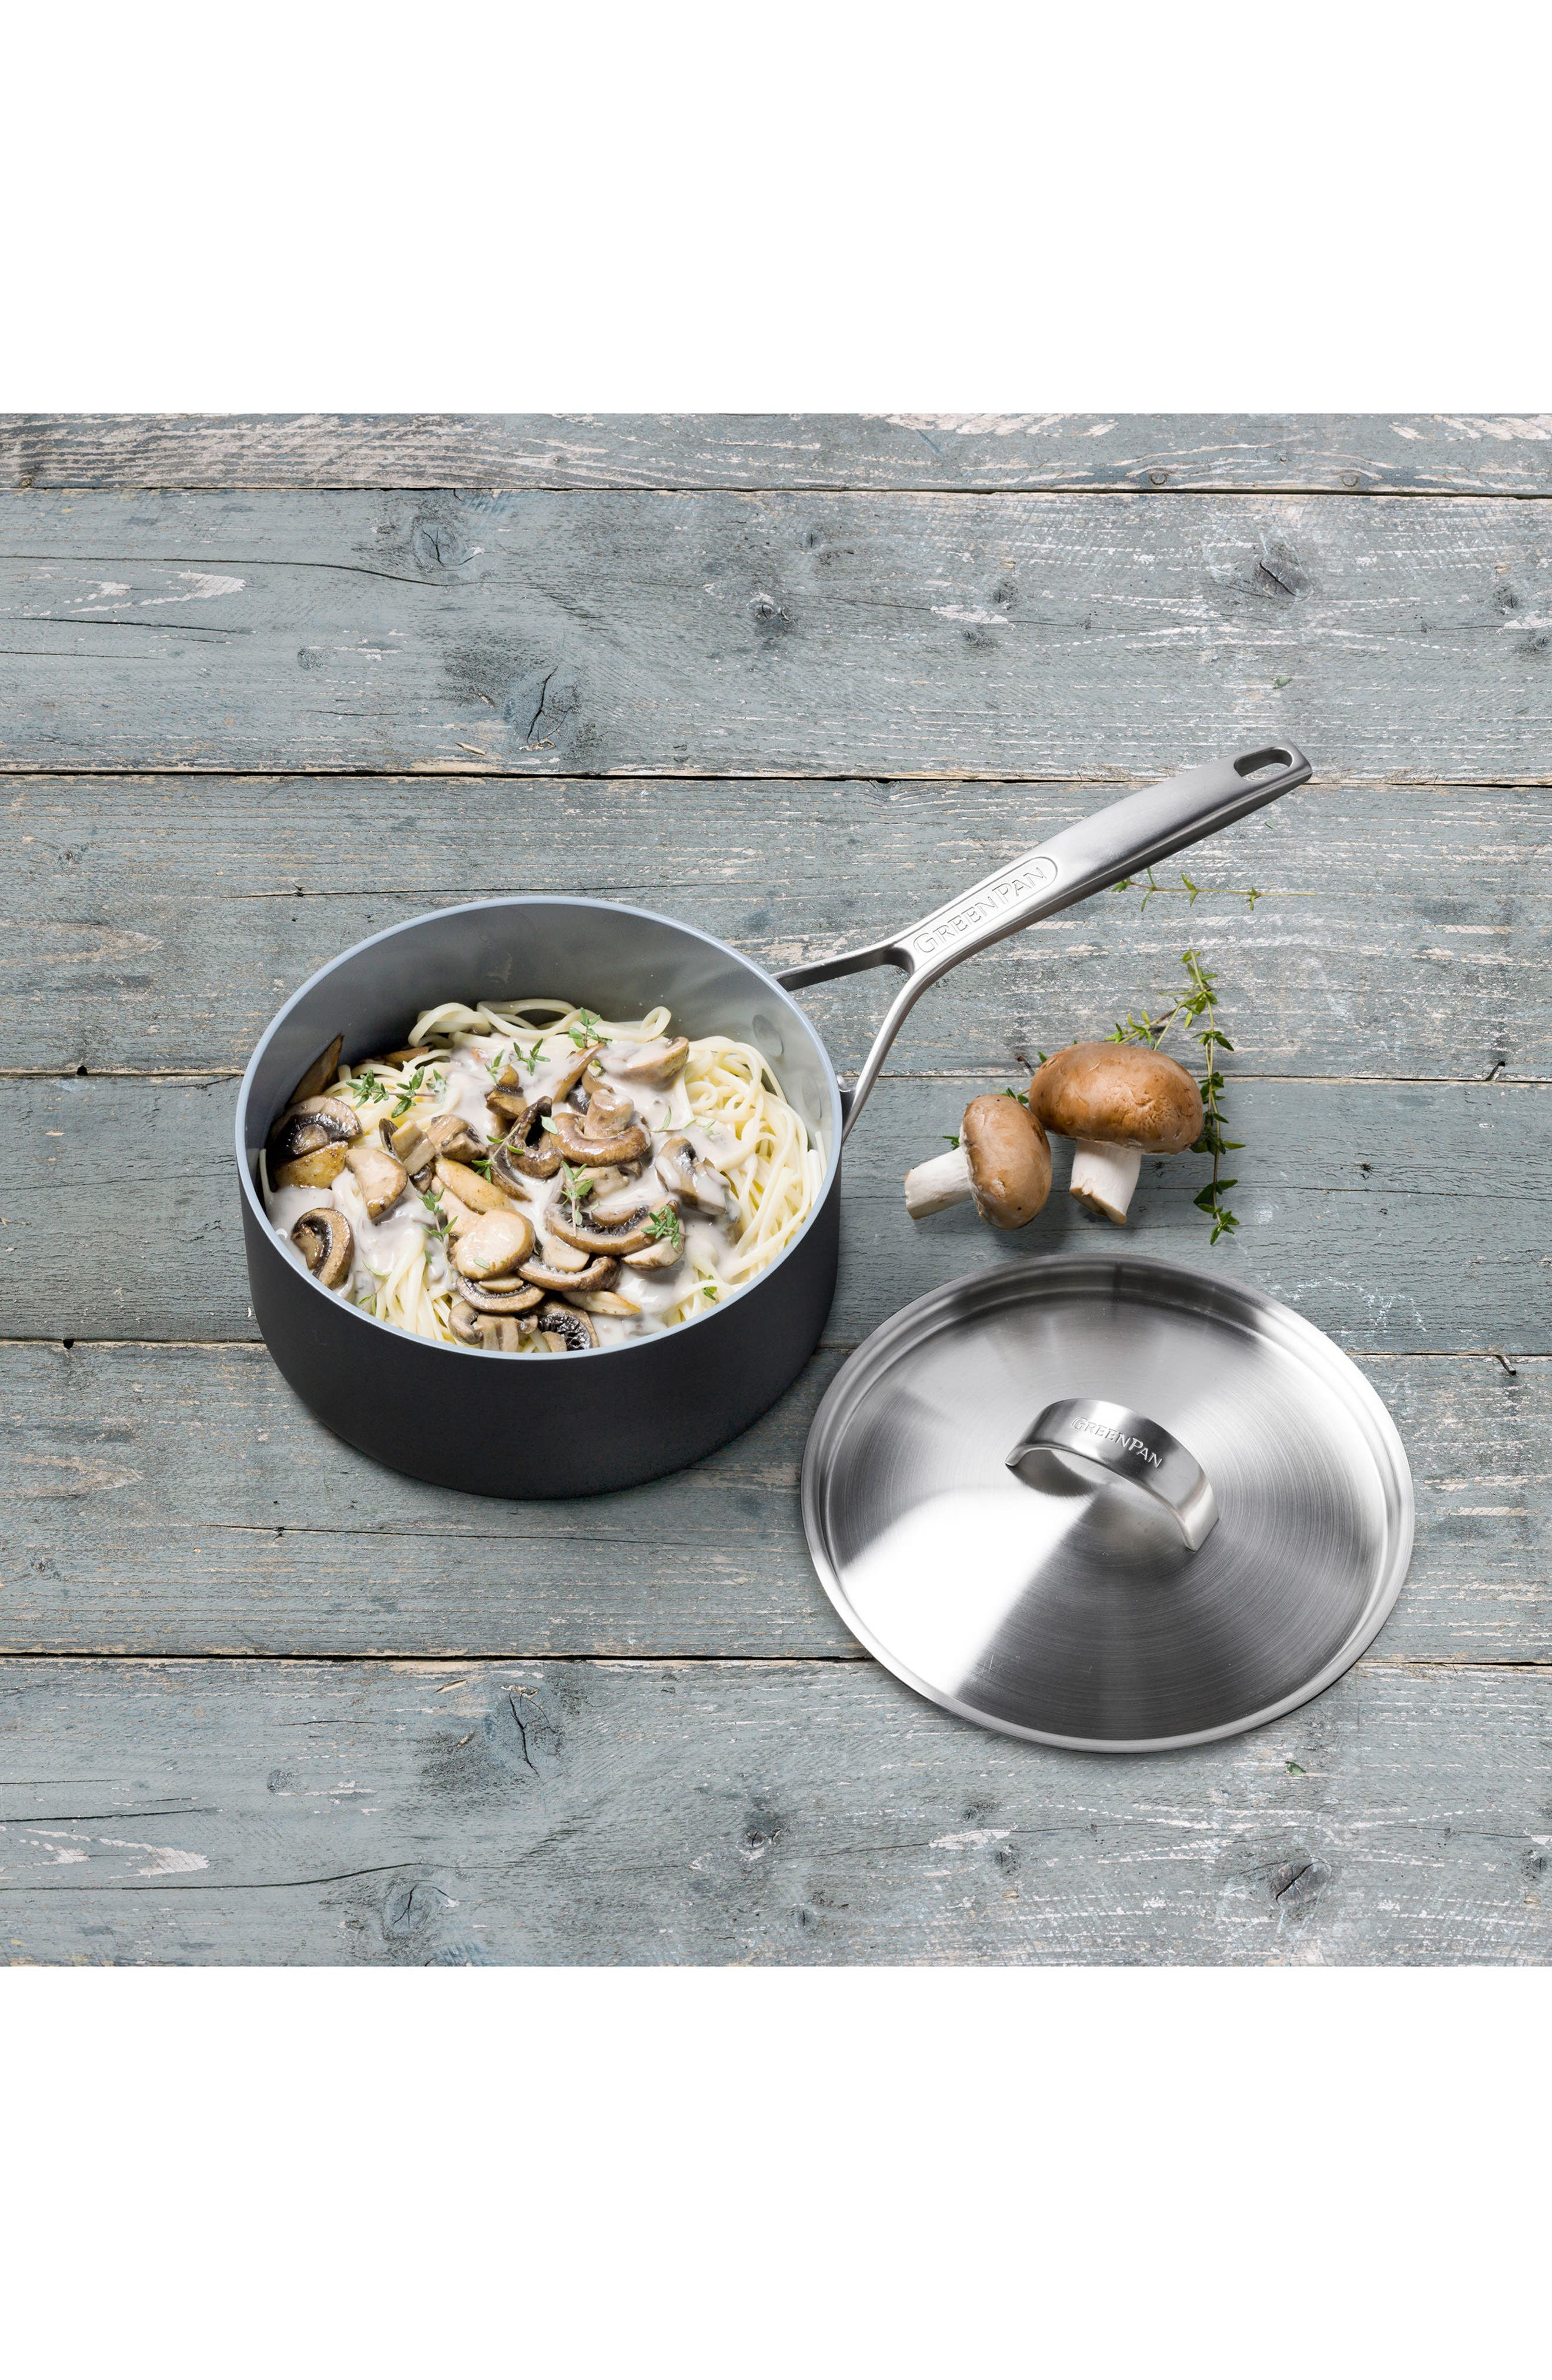 Paris 2-Quart Multilayer Stainless Steel Ceramic Nonstick Saucepan with Lid,                             Alternate thumbnail 3, color,                             Grey